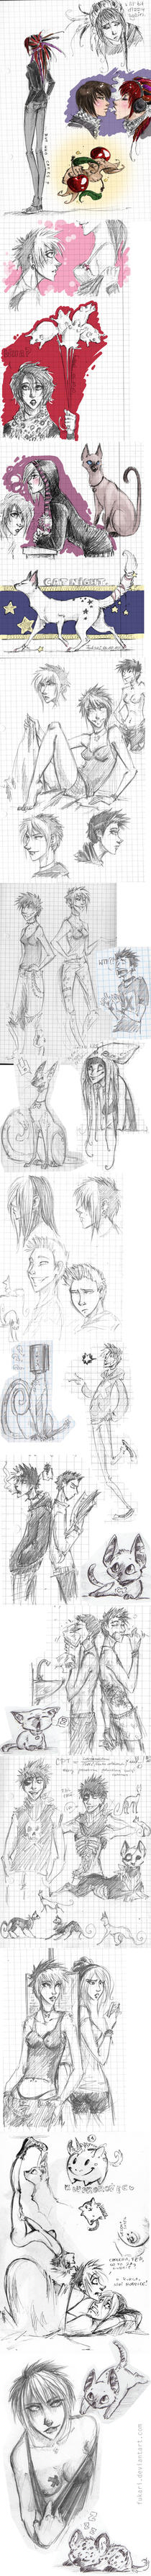 doodles from notebook by Fukari